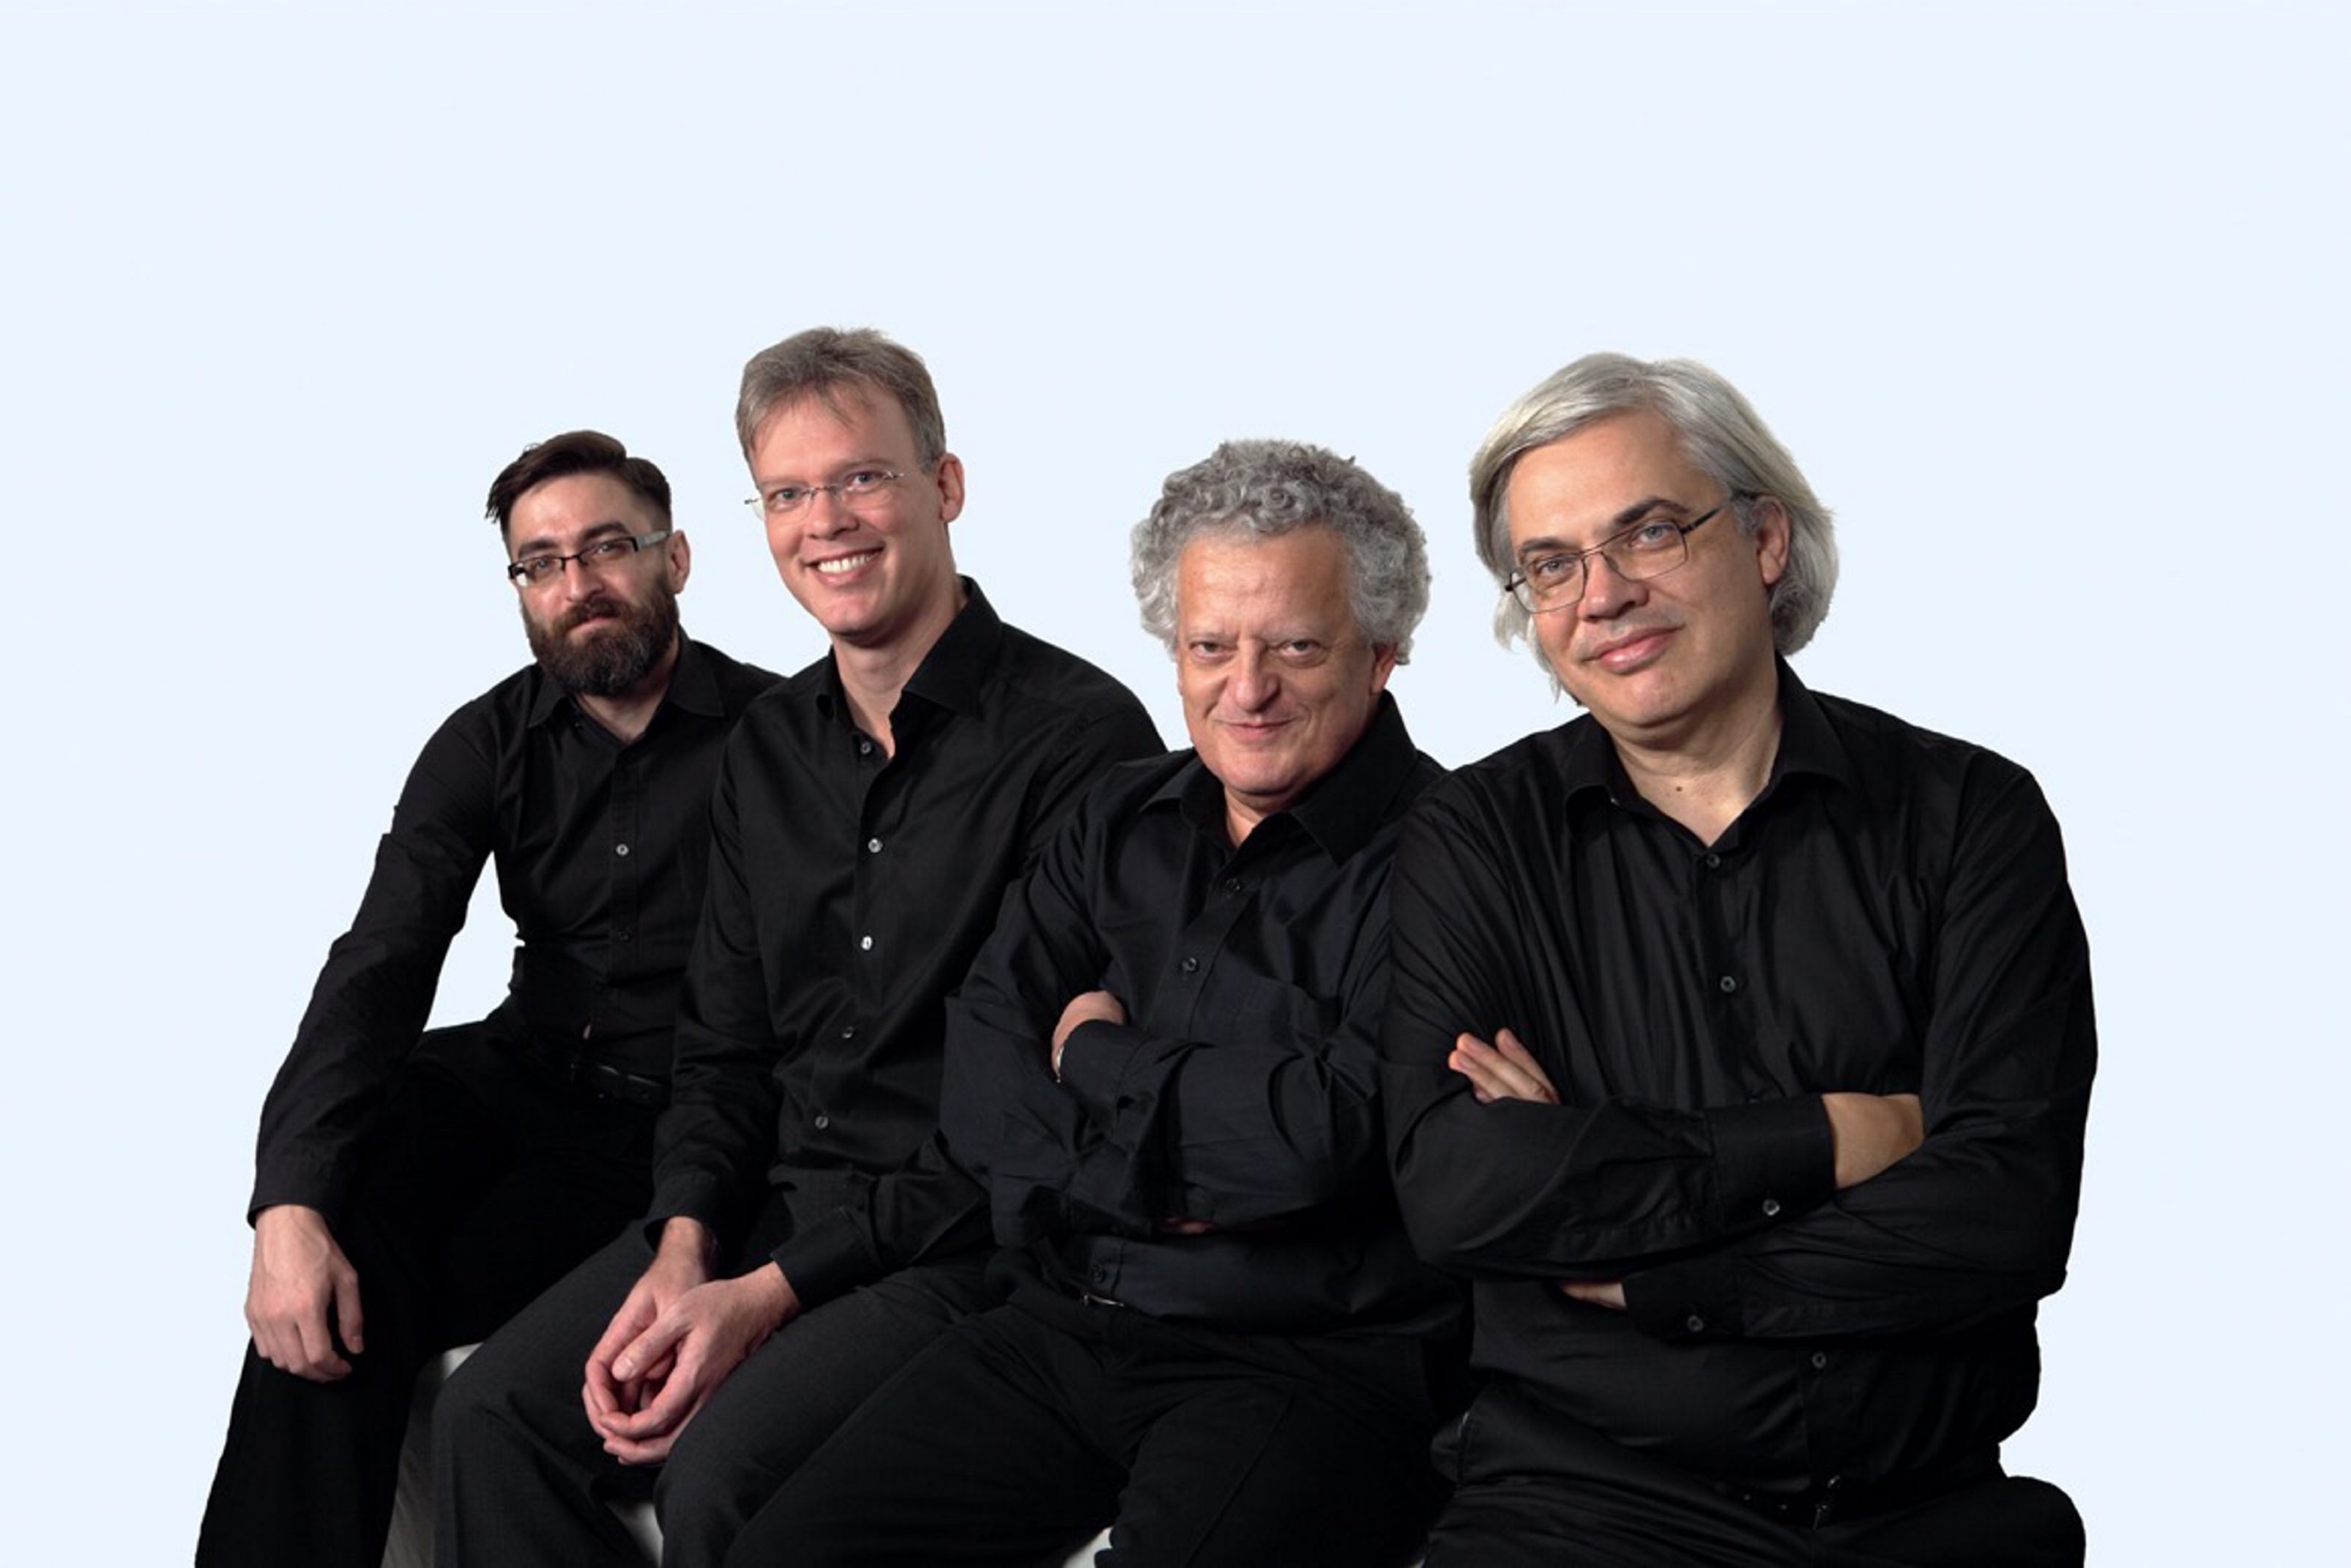 The Arditti Quartet took part in workshops and performed at June in Buffalo. (Photo Astrid Karger)